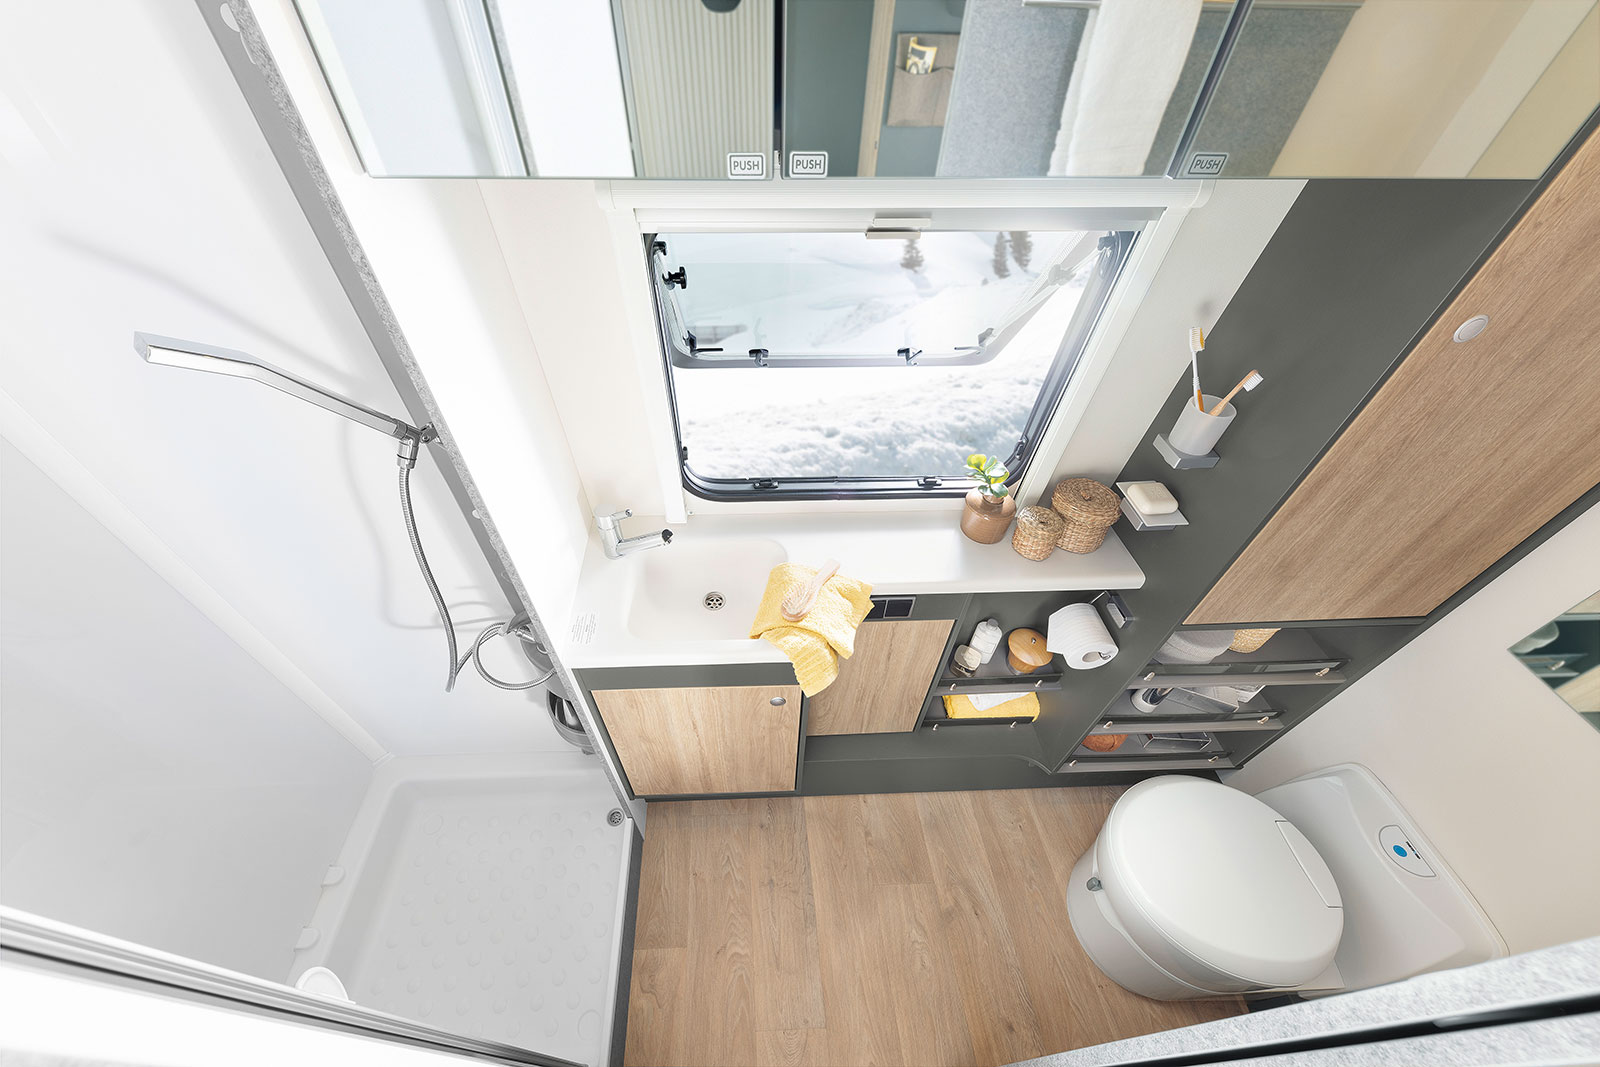 The bathroom, which stretches across the entire width of the vehicle with an integrated shower, is the perfect place to start your day • 690 BQT | Tarragona